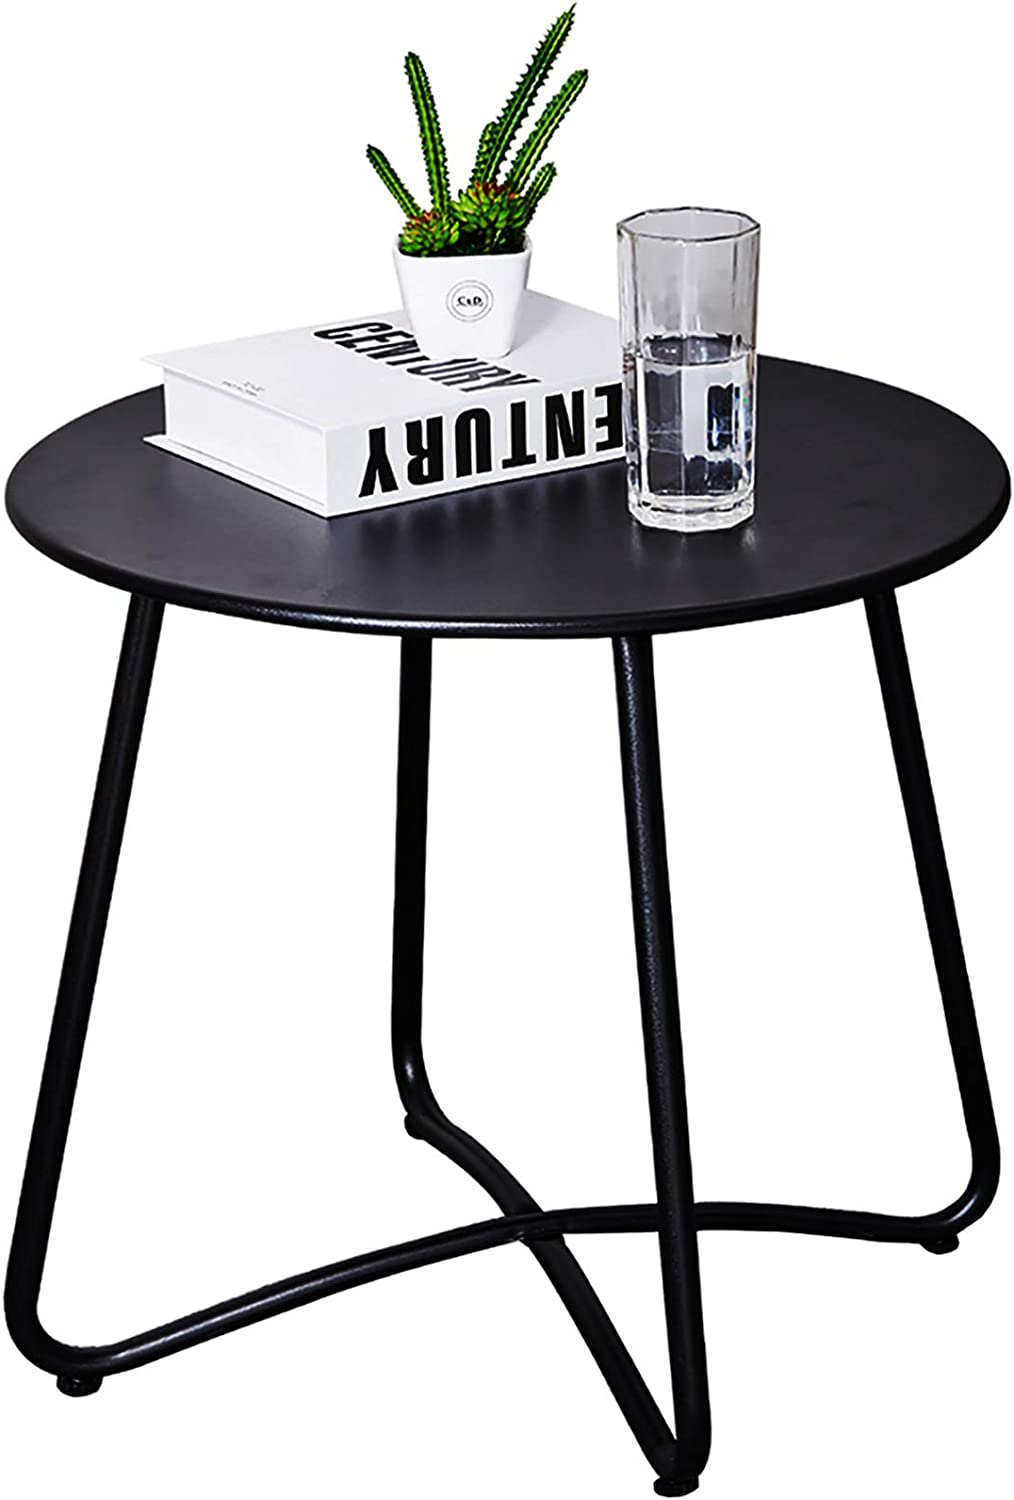 CaiFang Patio Side Table Outdoor, Small Round Metal Side Table Waterproof Portable Coffee Table End Table for Garden, Porch, Balcony, Yard (Black)